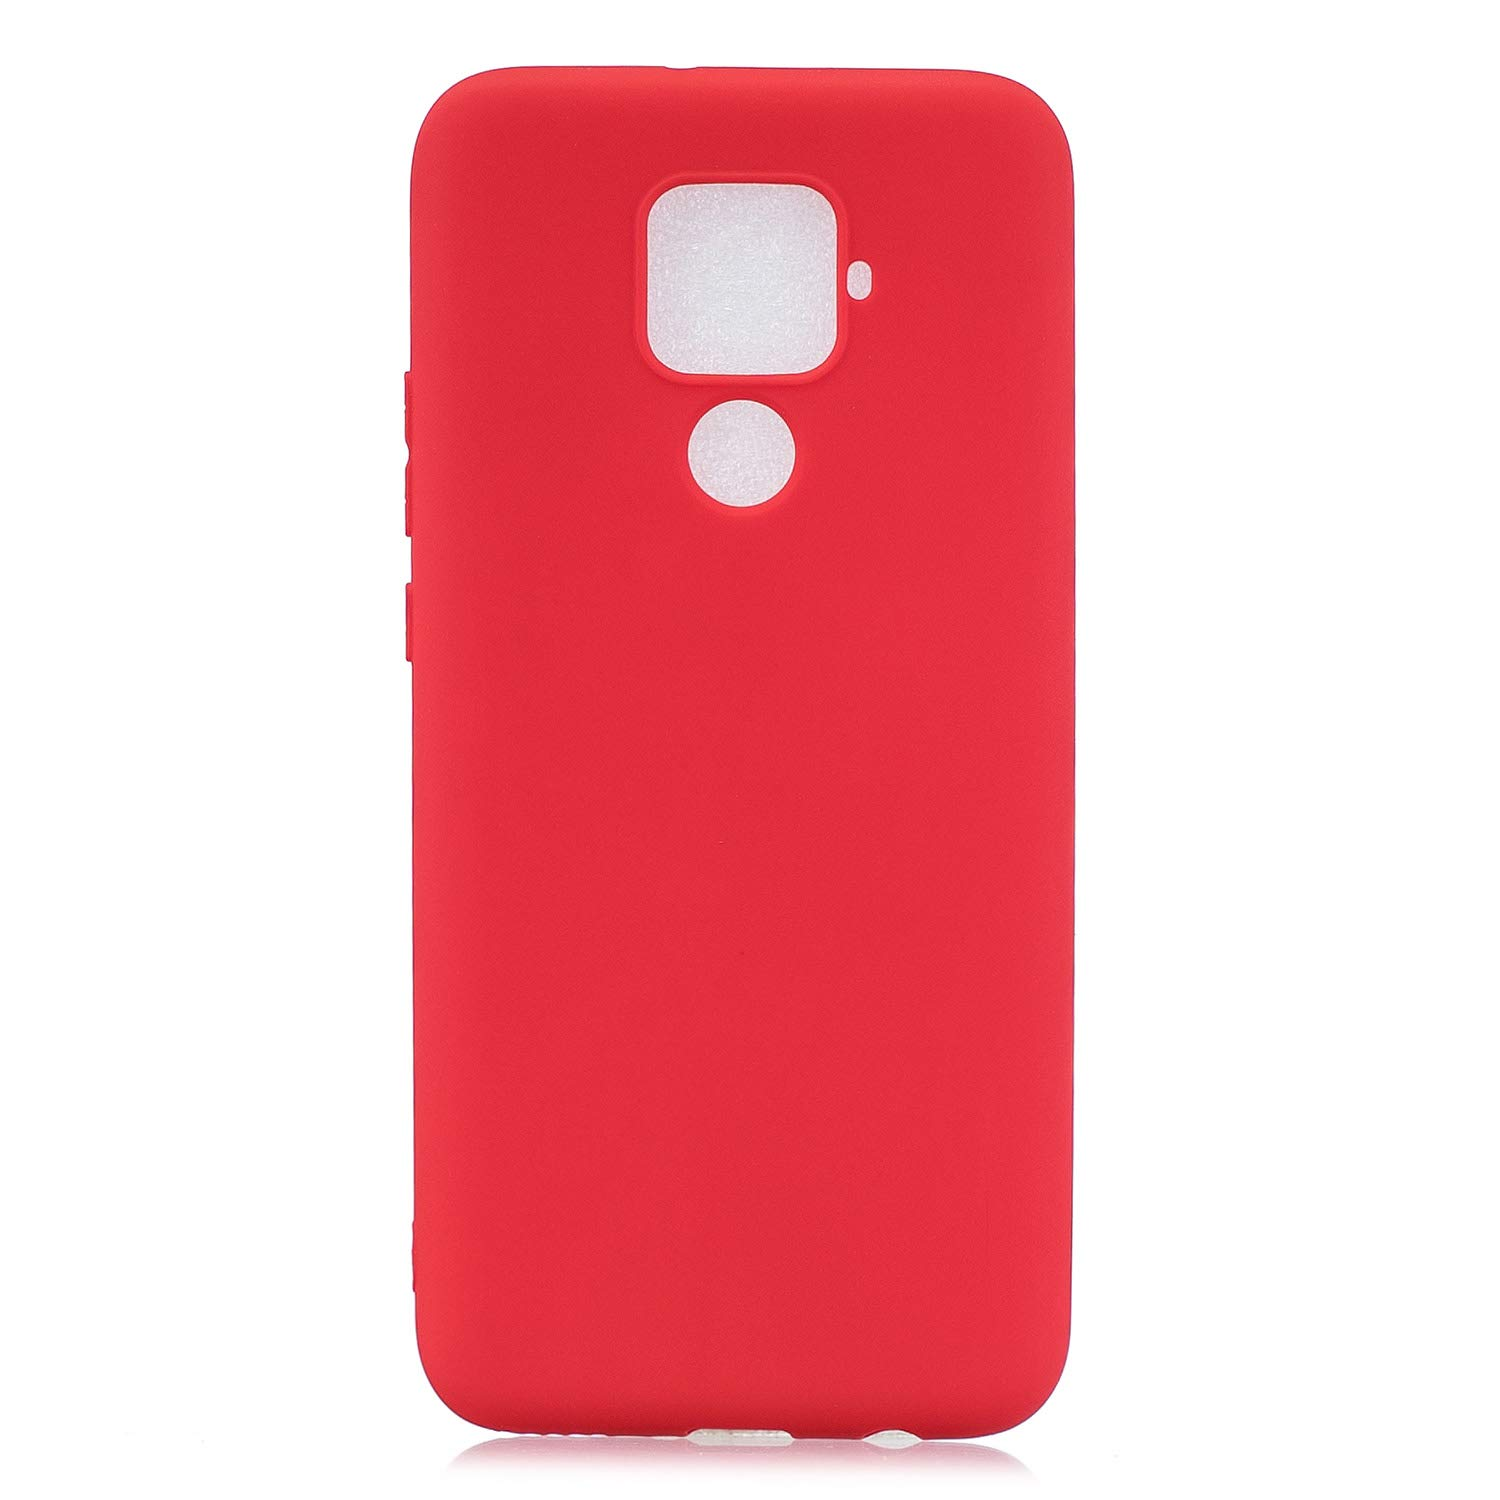 DasKAn Solid Color Matte Silicone Case for Huawei Honor 9X,Elegant Ultra Slim Soft Touch Rubber Back Cover Shockproof Drop Resistant Anti Scratch Flexible Gel TPU Protective Phone Case,Pink